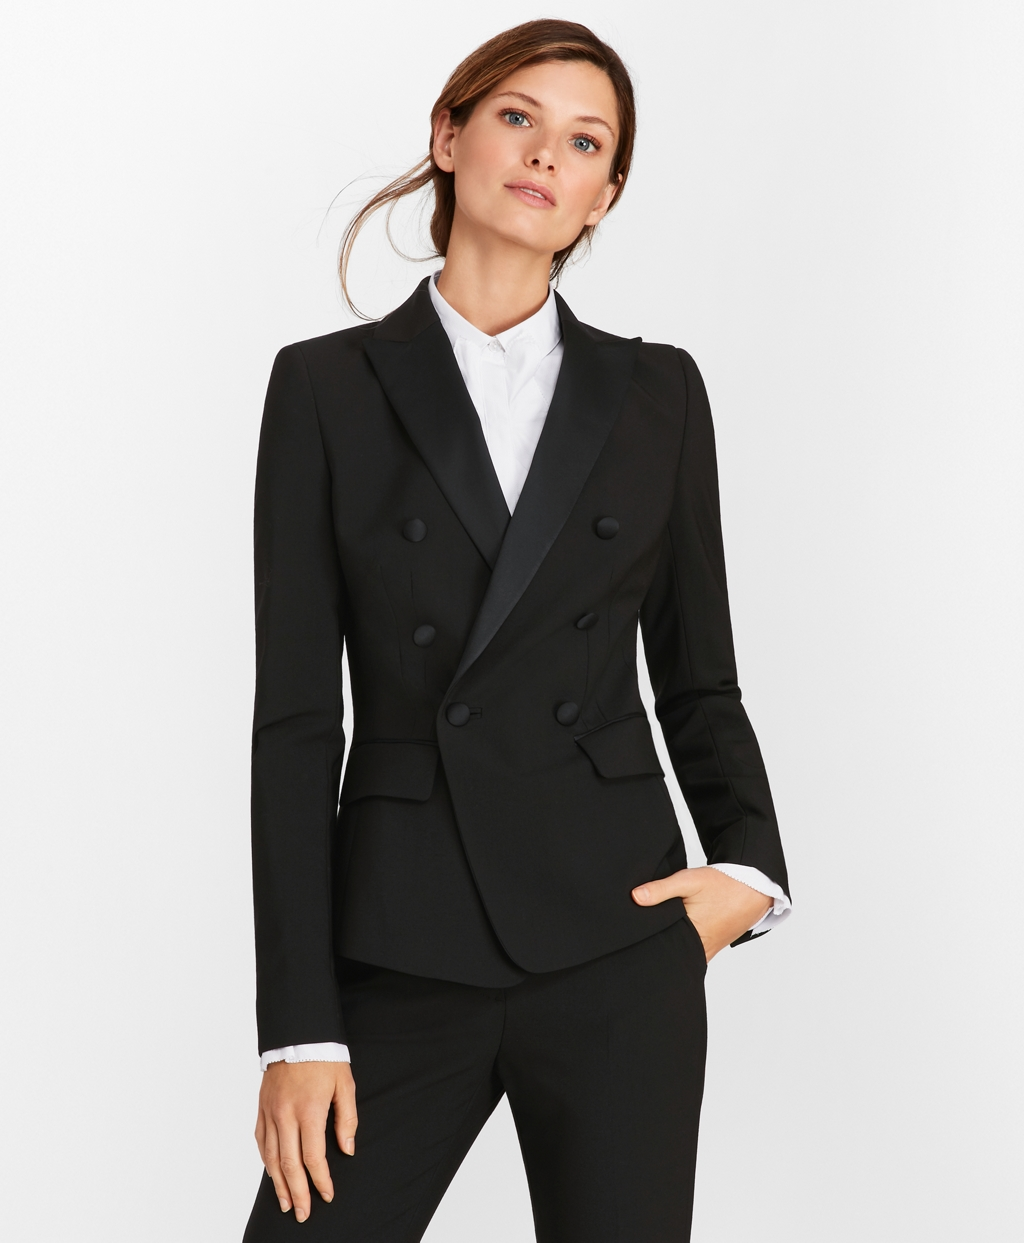 1930s Dresses | 30s Art Deco Dress Brooks Brothers Womens Petite Stretch-Wool Crepe Double-Breasted Tuxedo Jacket $498.00 AT vintagedancer.com